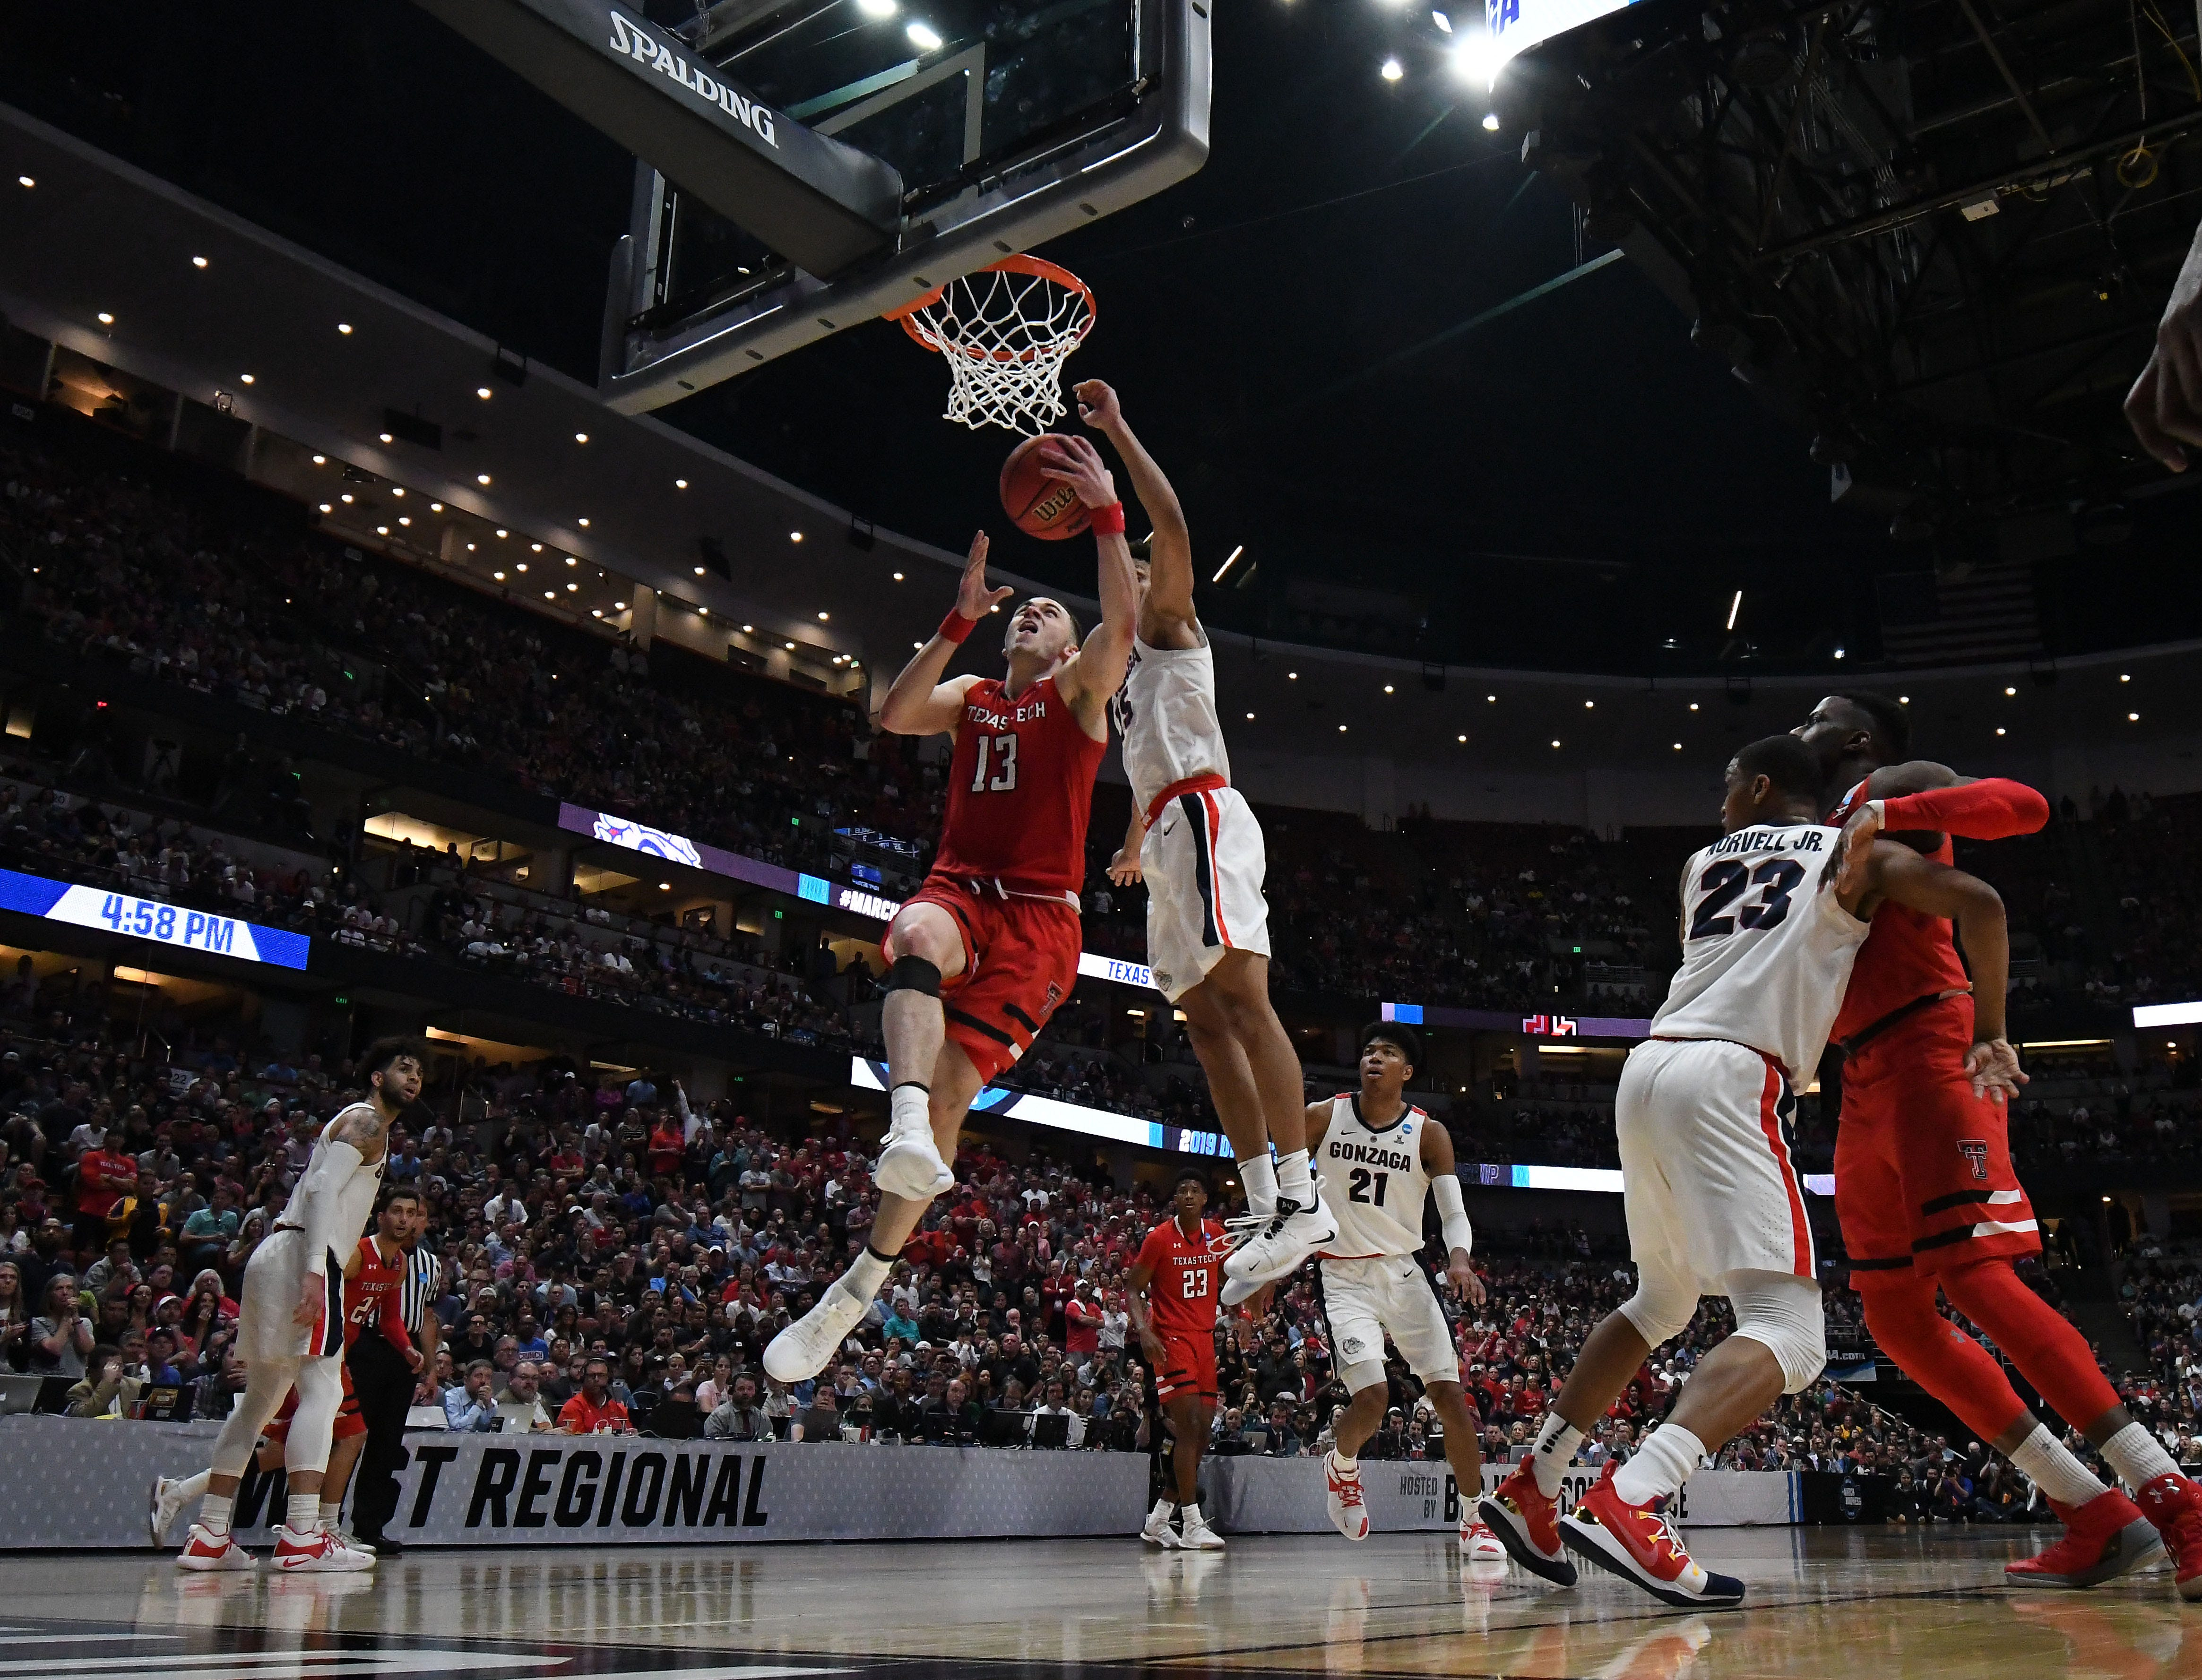 March 30, 2019; Anaheim, CA, USA; Texas Tech Red Raiders guard Matt Mooney (13) shoots against the Gonzaga Bulldogs during the second half in the championship game of the west regional of the 2019 NCAA Tournament at Honda Center. Mandatory Credit: Richard Mackson-USA TODAY Sports